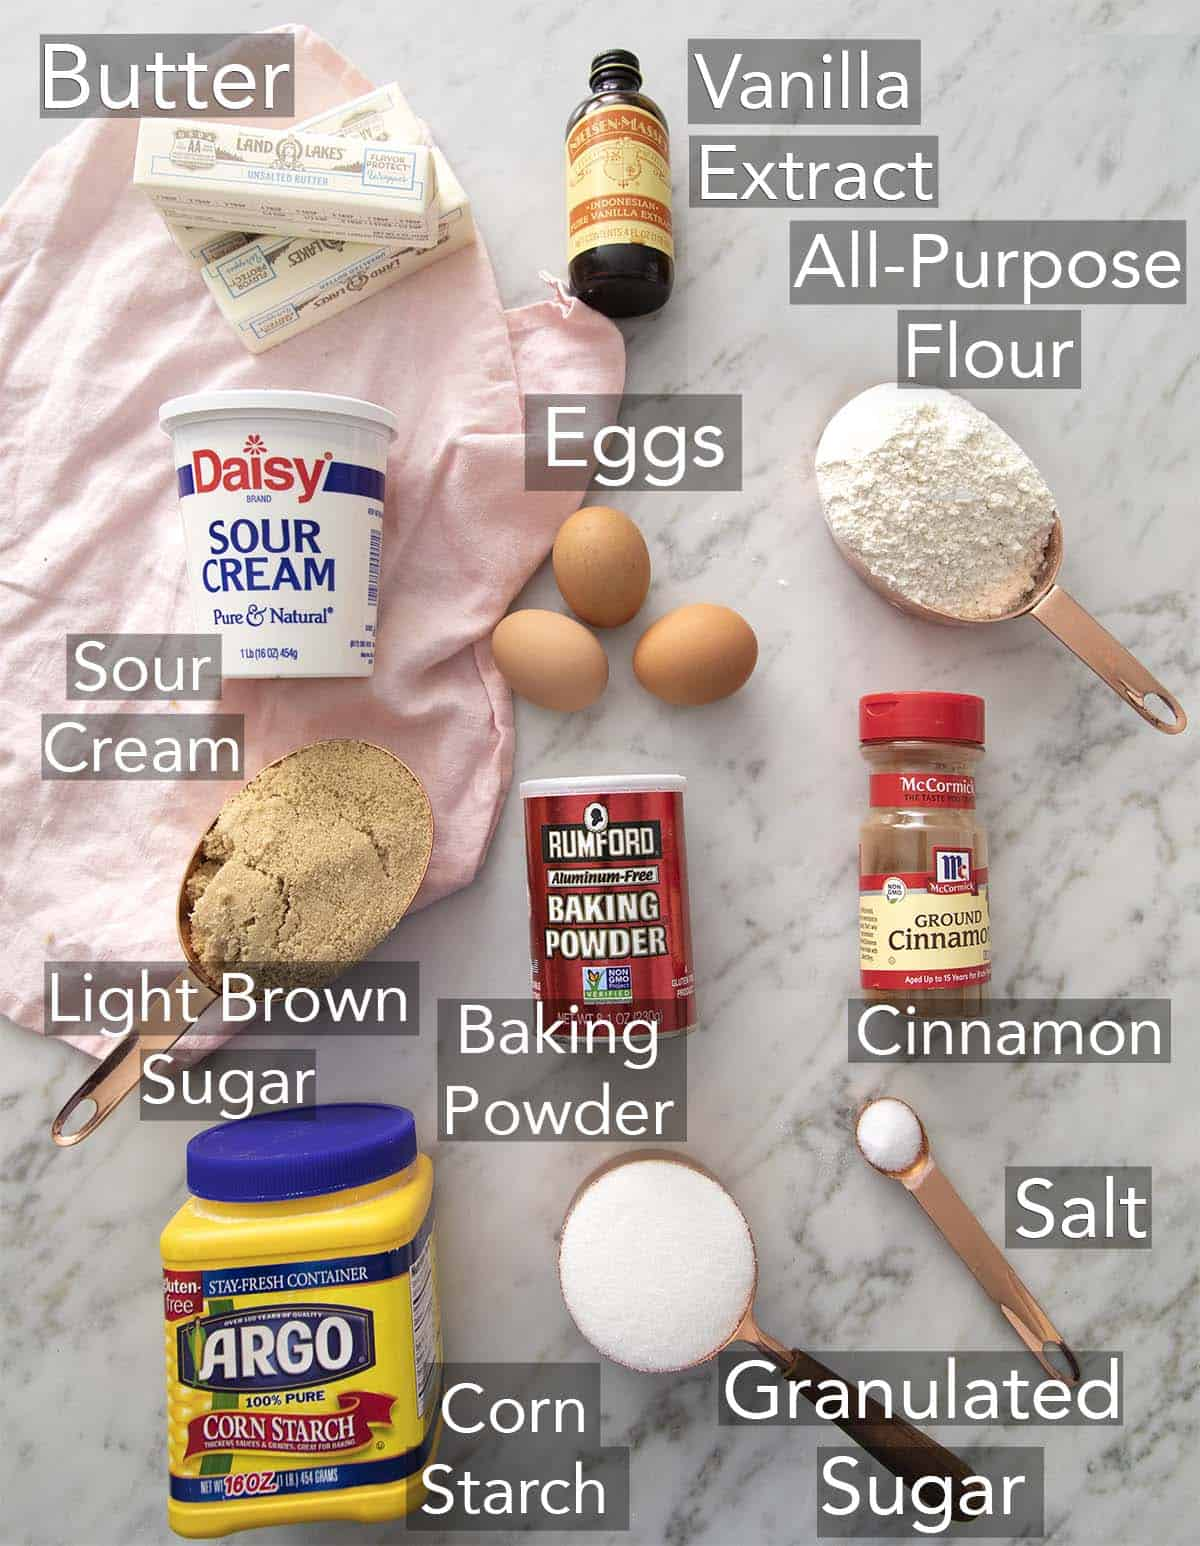 Ingredients for making a Coffee Cake on a counter.